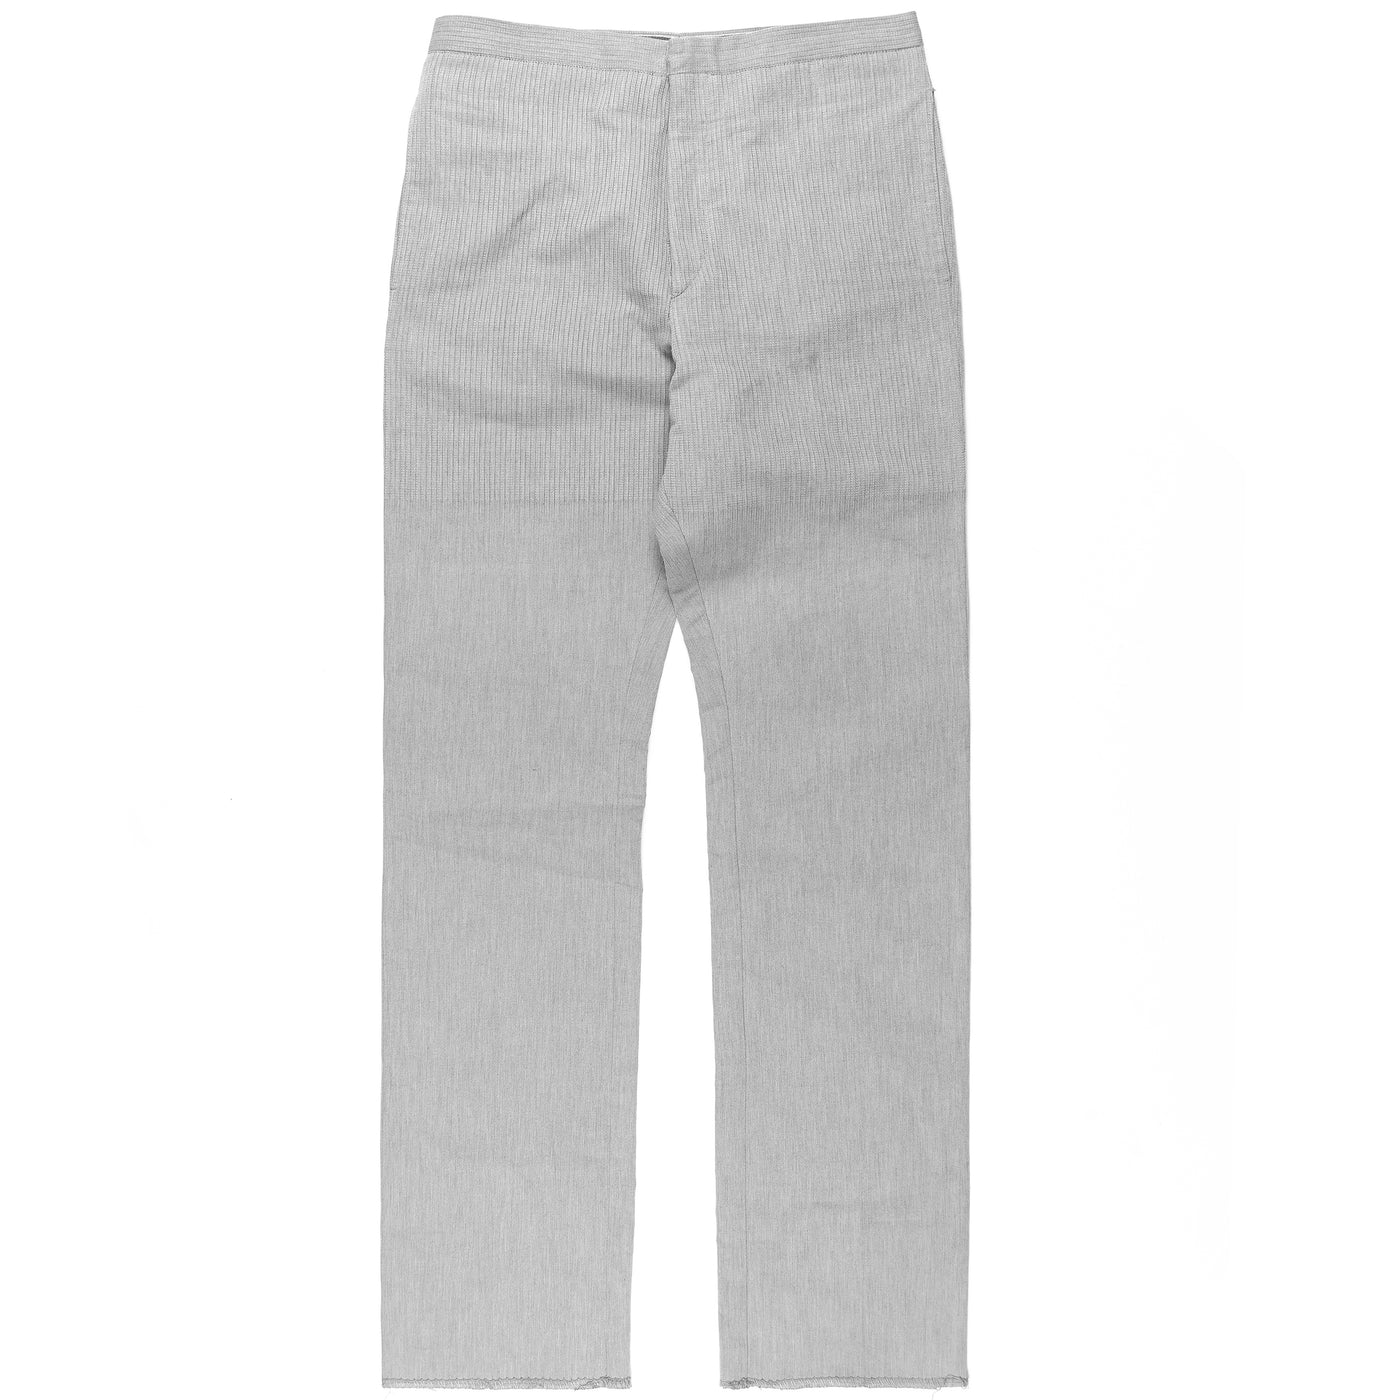 Carol Christian Poell Dove Grey Trousers - SS09